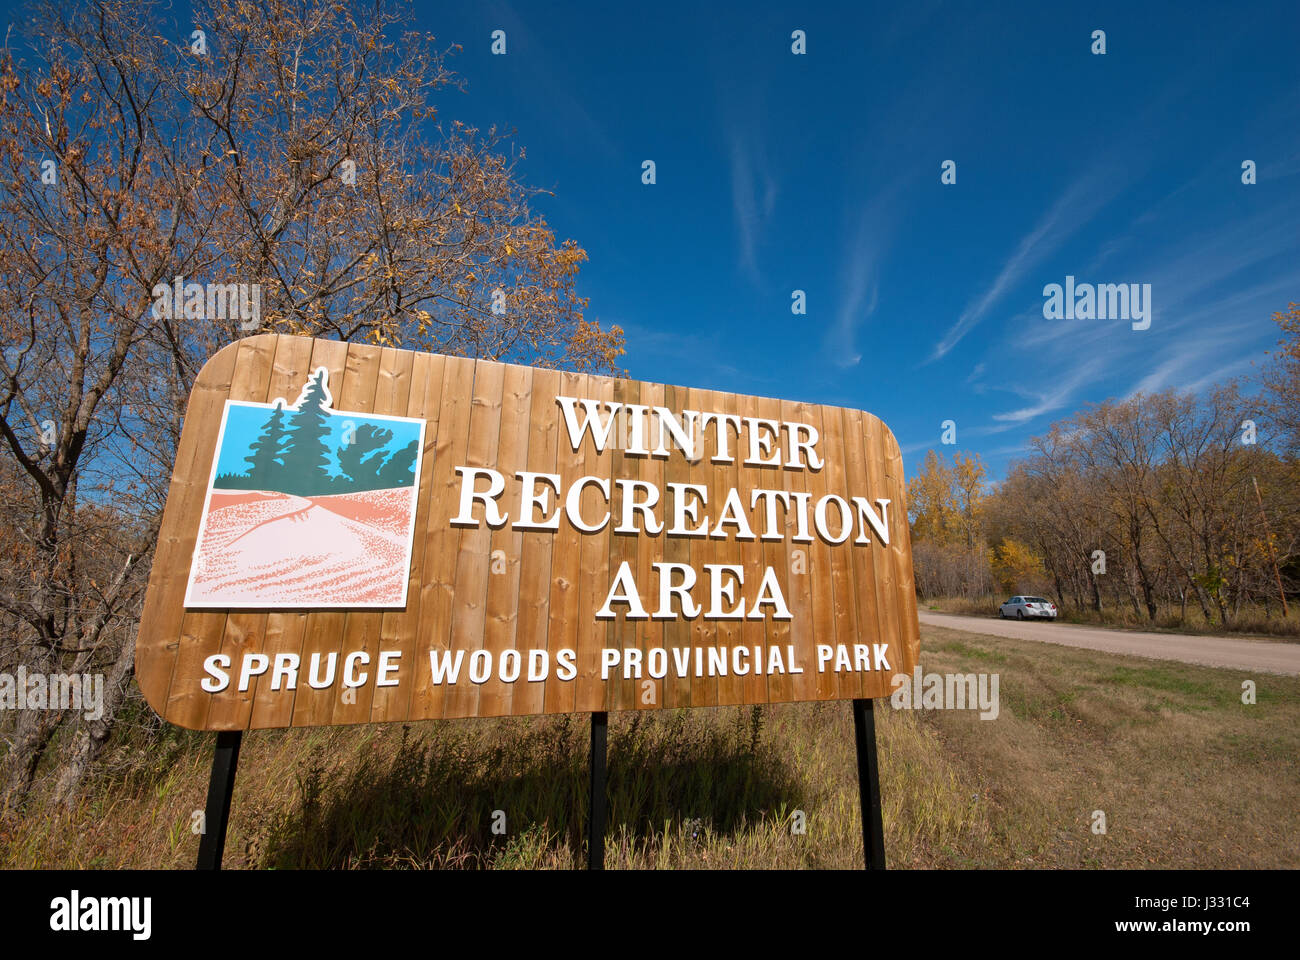 Sign at Spruce Woods Provincial Park (winter recreation area), Manitoba, Canada - Stock Image